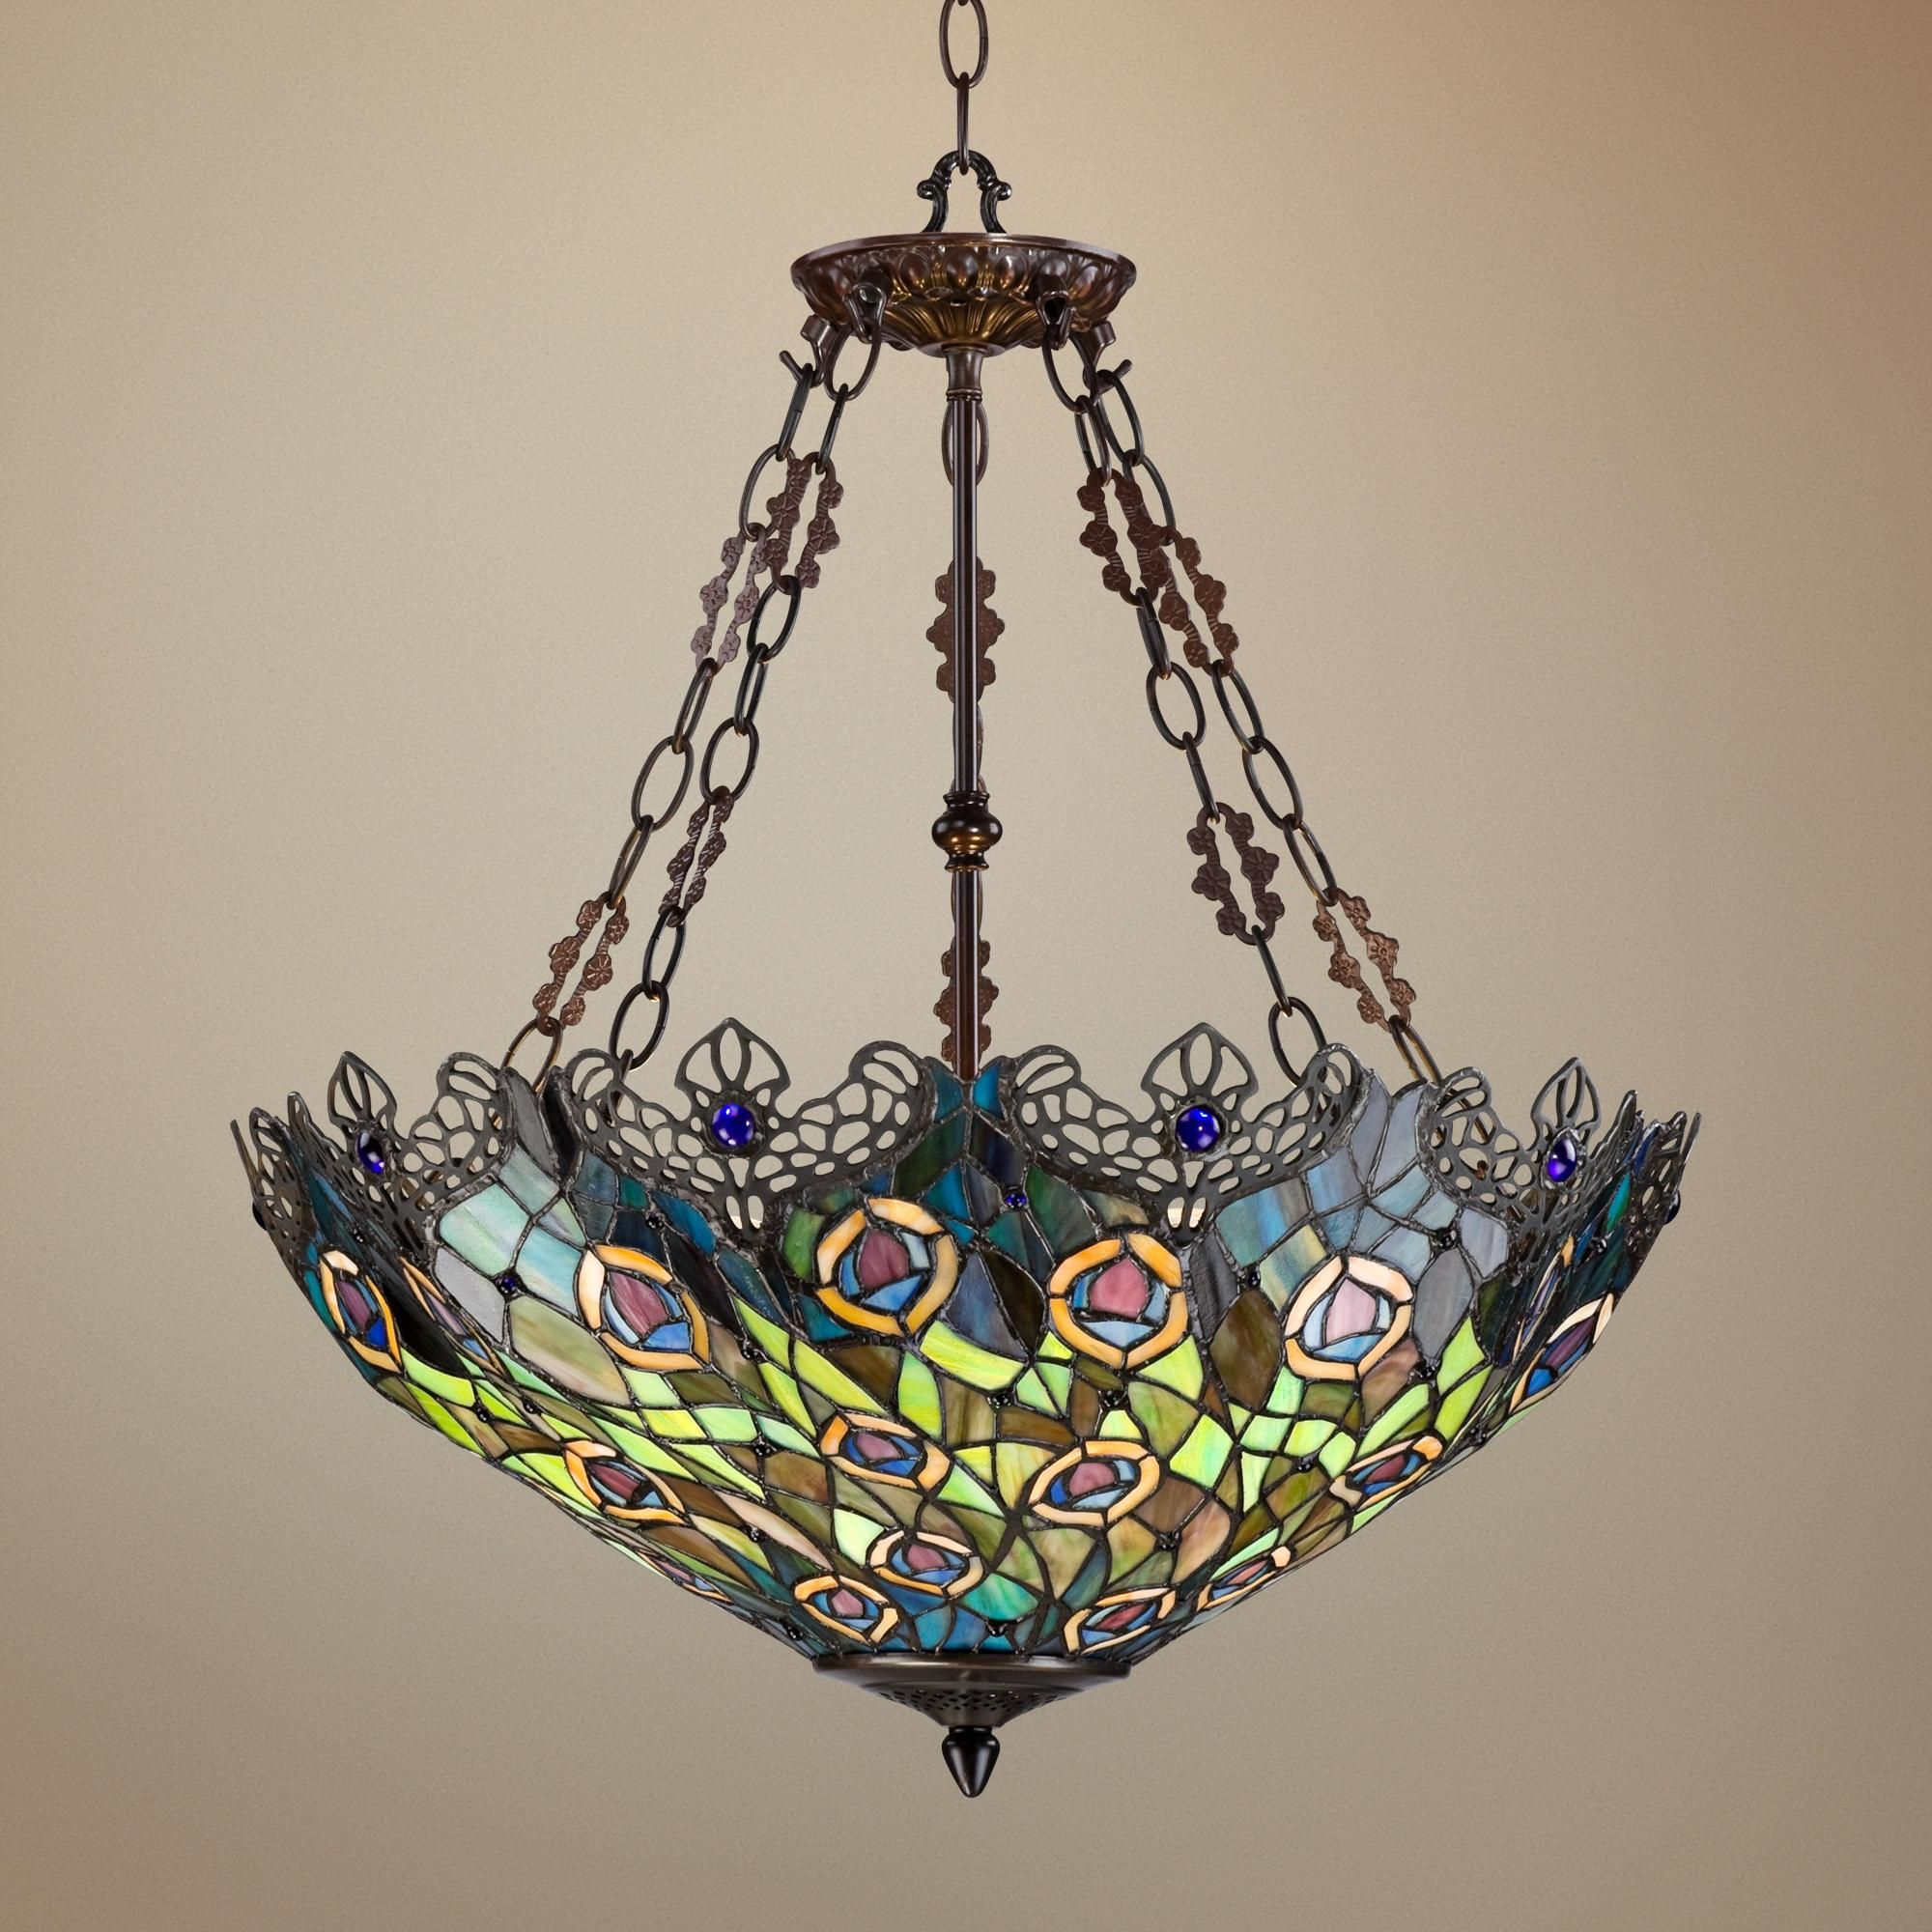 I Want This New Peacock Feather Tiffany Chandelier Lamp In Our New